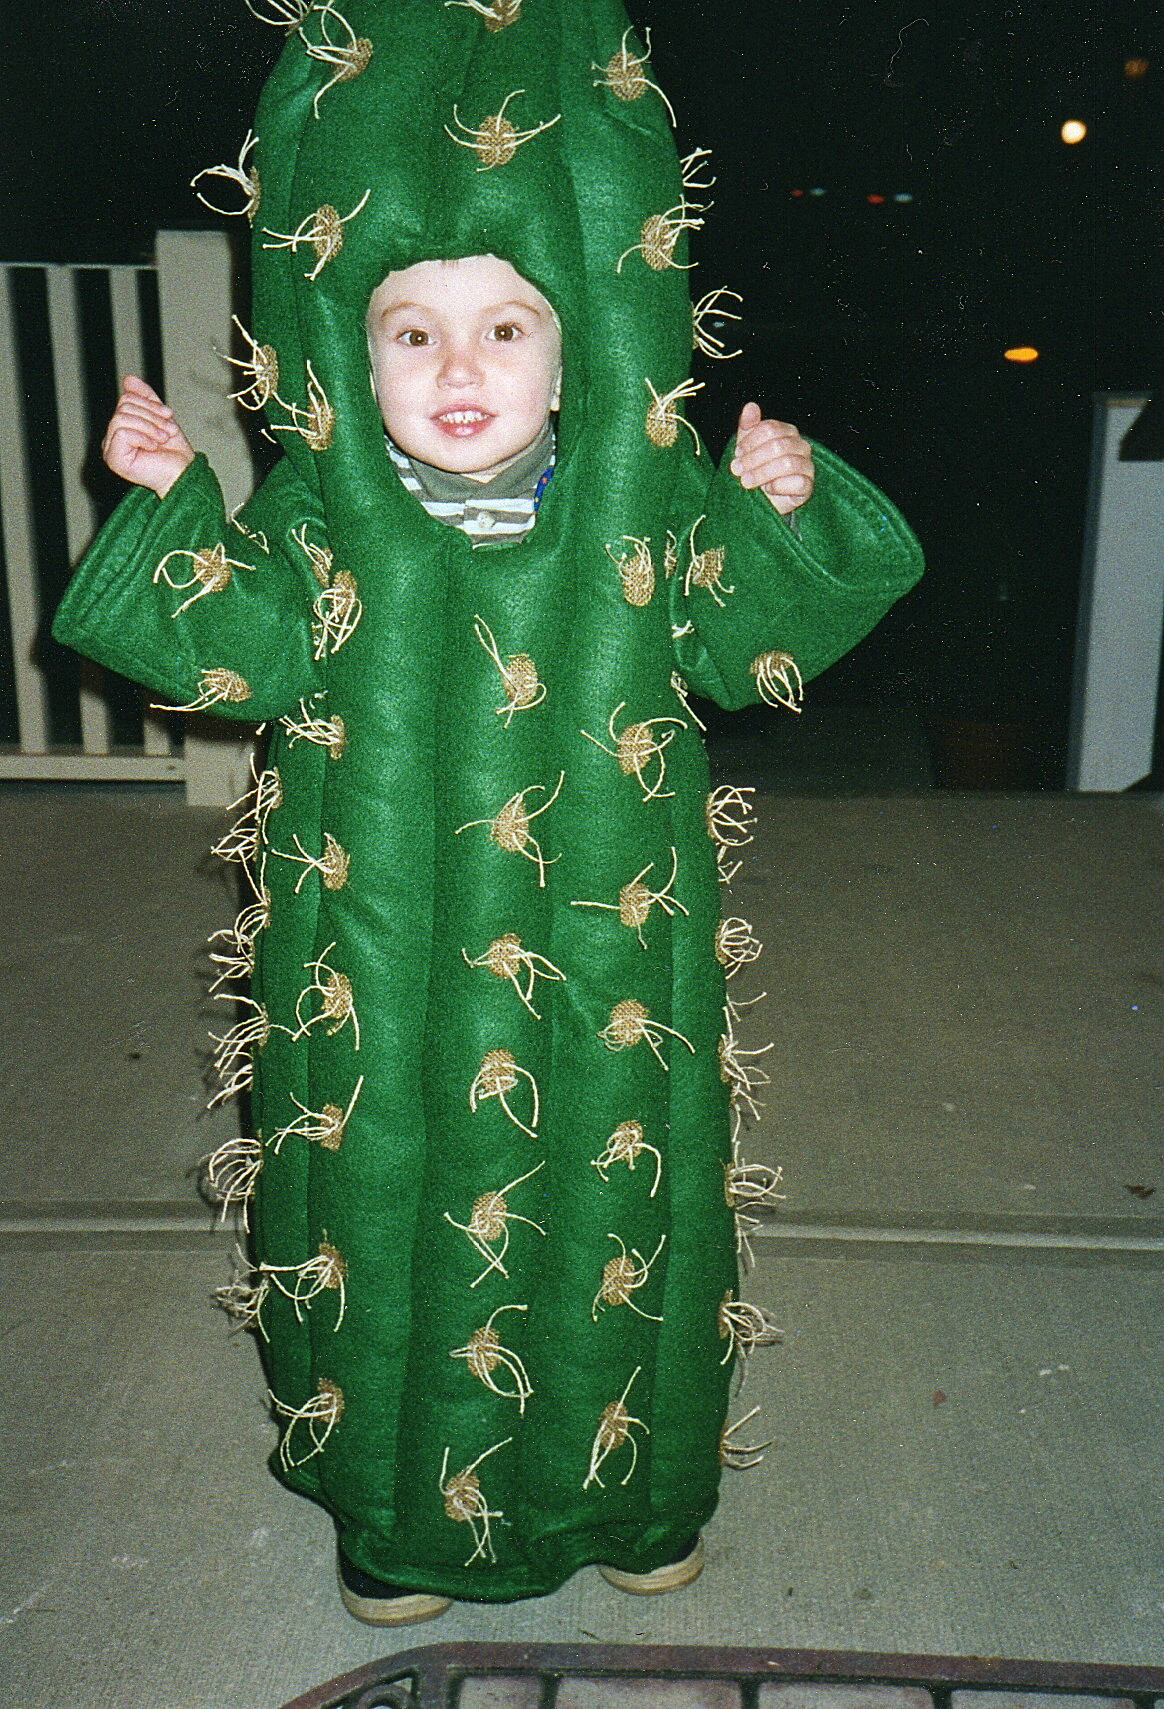 Best ideas about Cactus Costume DIY . Save or Pin BERNINA Halloween 2011 Cactus – Sewing Projects Now.